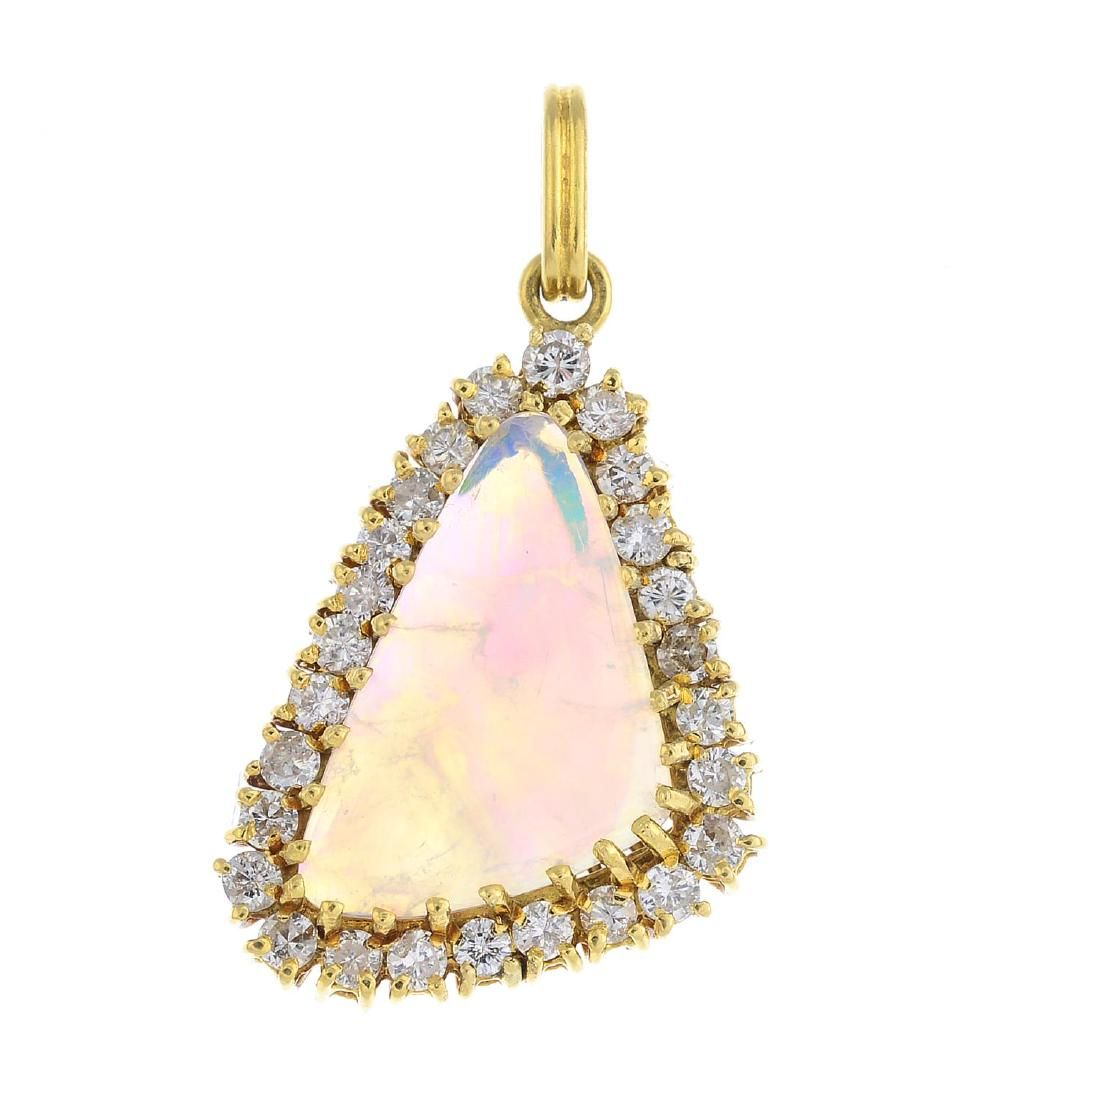 An opal and diamond cluster pendant. The free-form